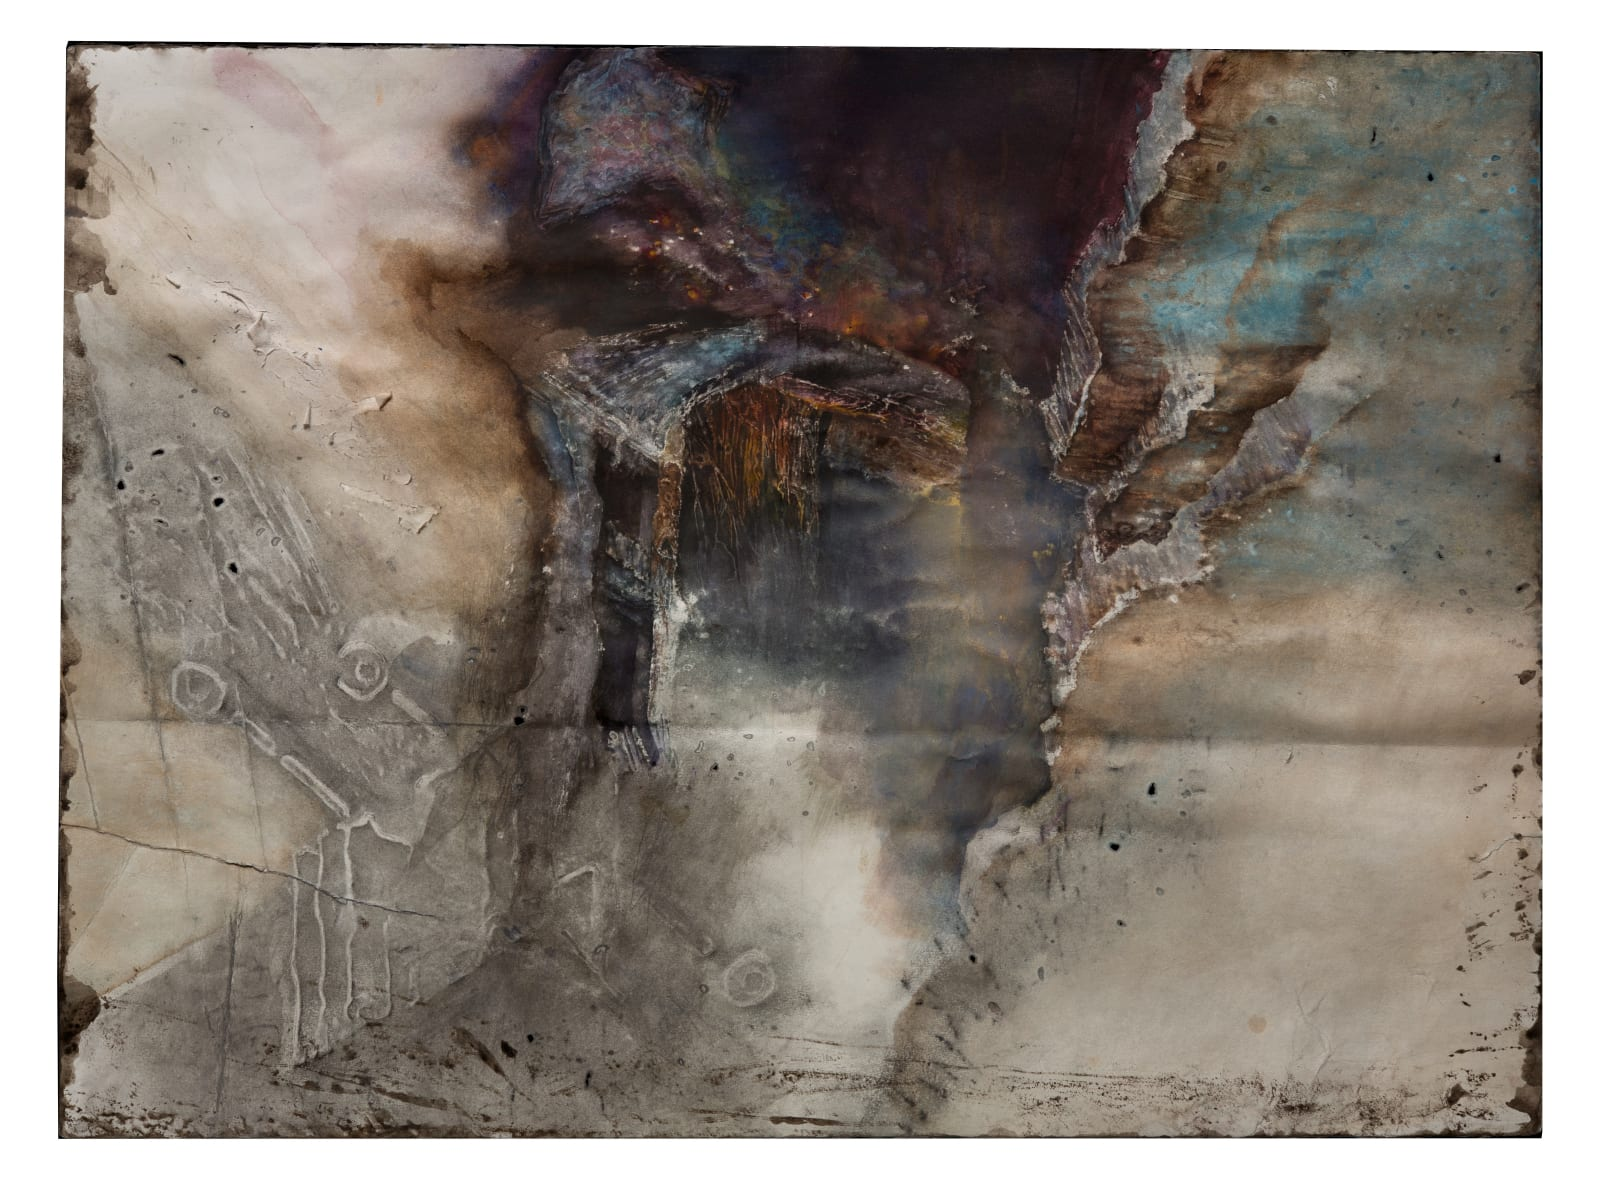 Liminatus Tarkovsky, 2020 Watercolor, acrylic, graphite, and woodcut on paper. 22 x 29.75 in. (TM 36) $6,500